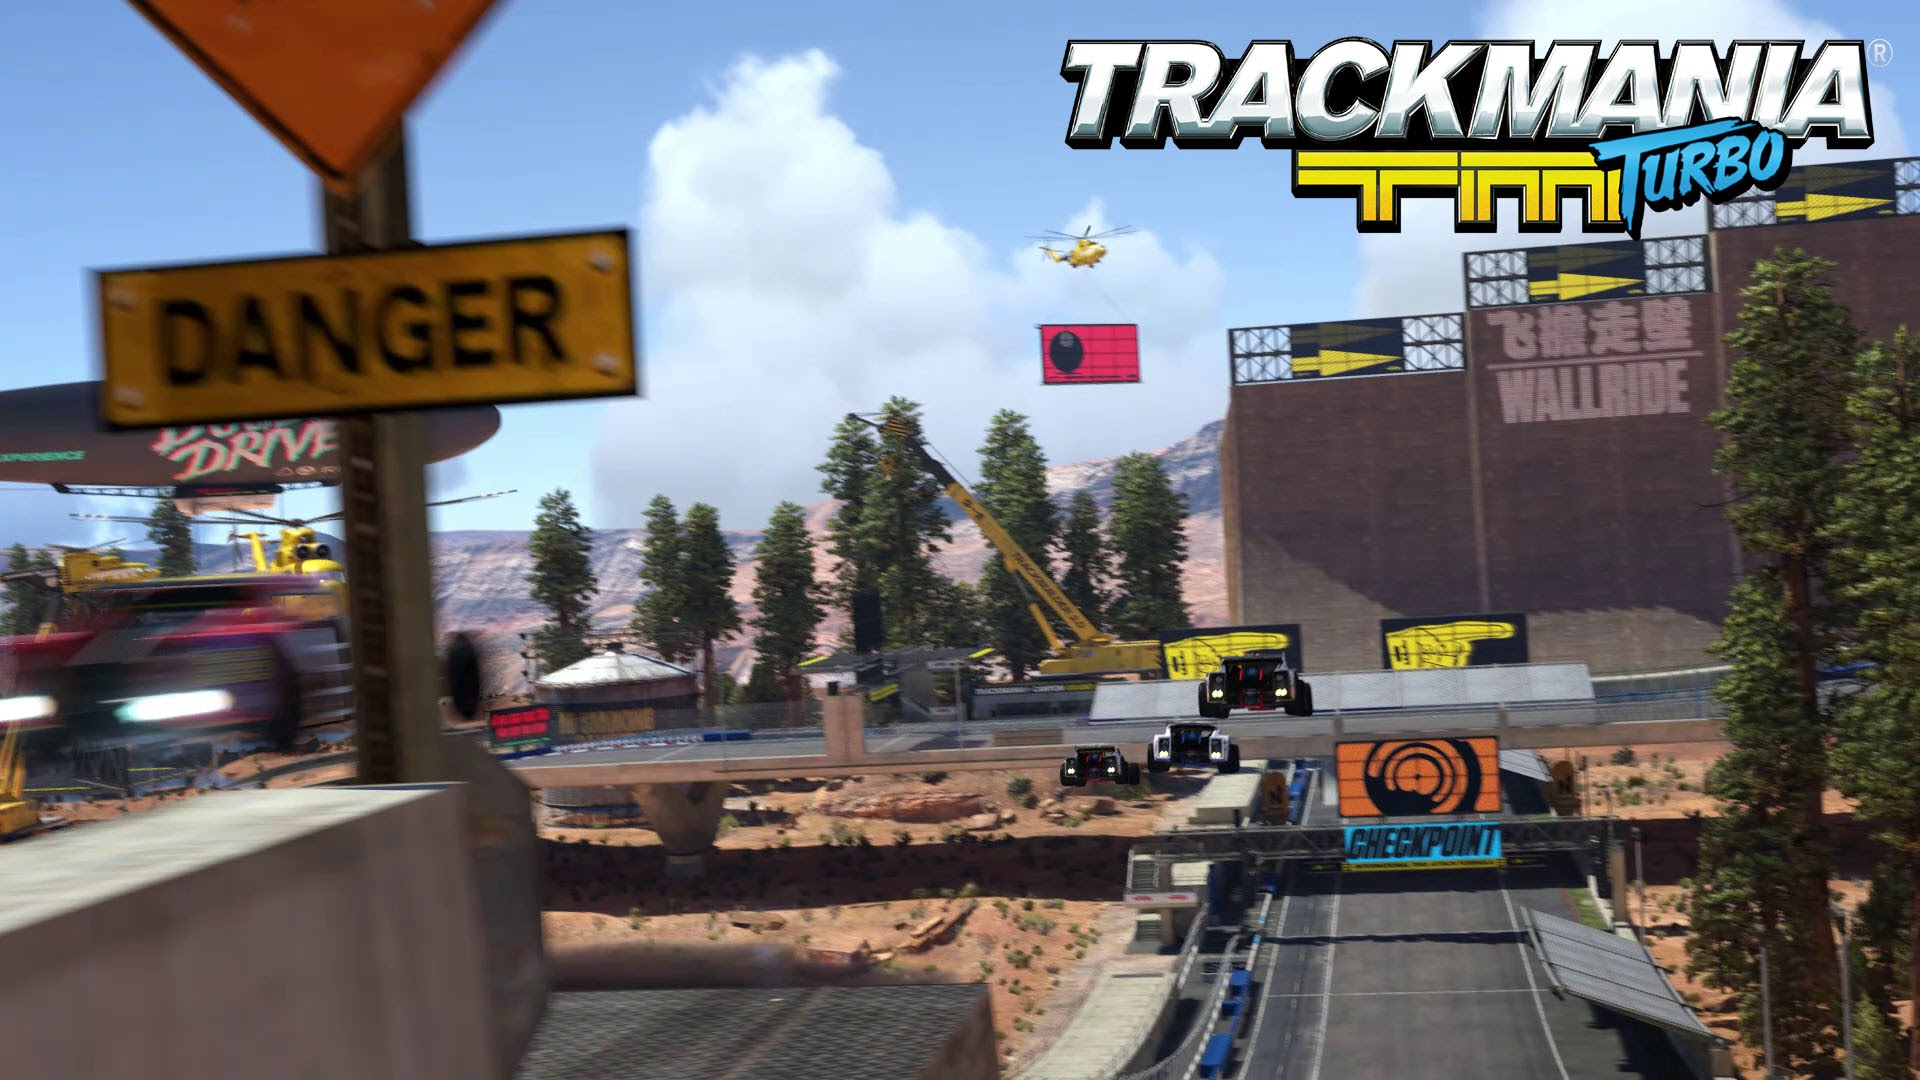 Trackmania Turbo Open Beta Trailer – Test your skills on PS4 & X1!